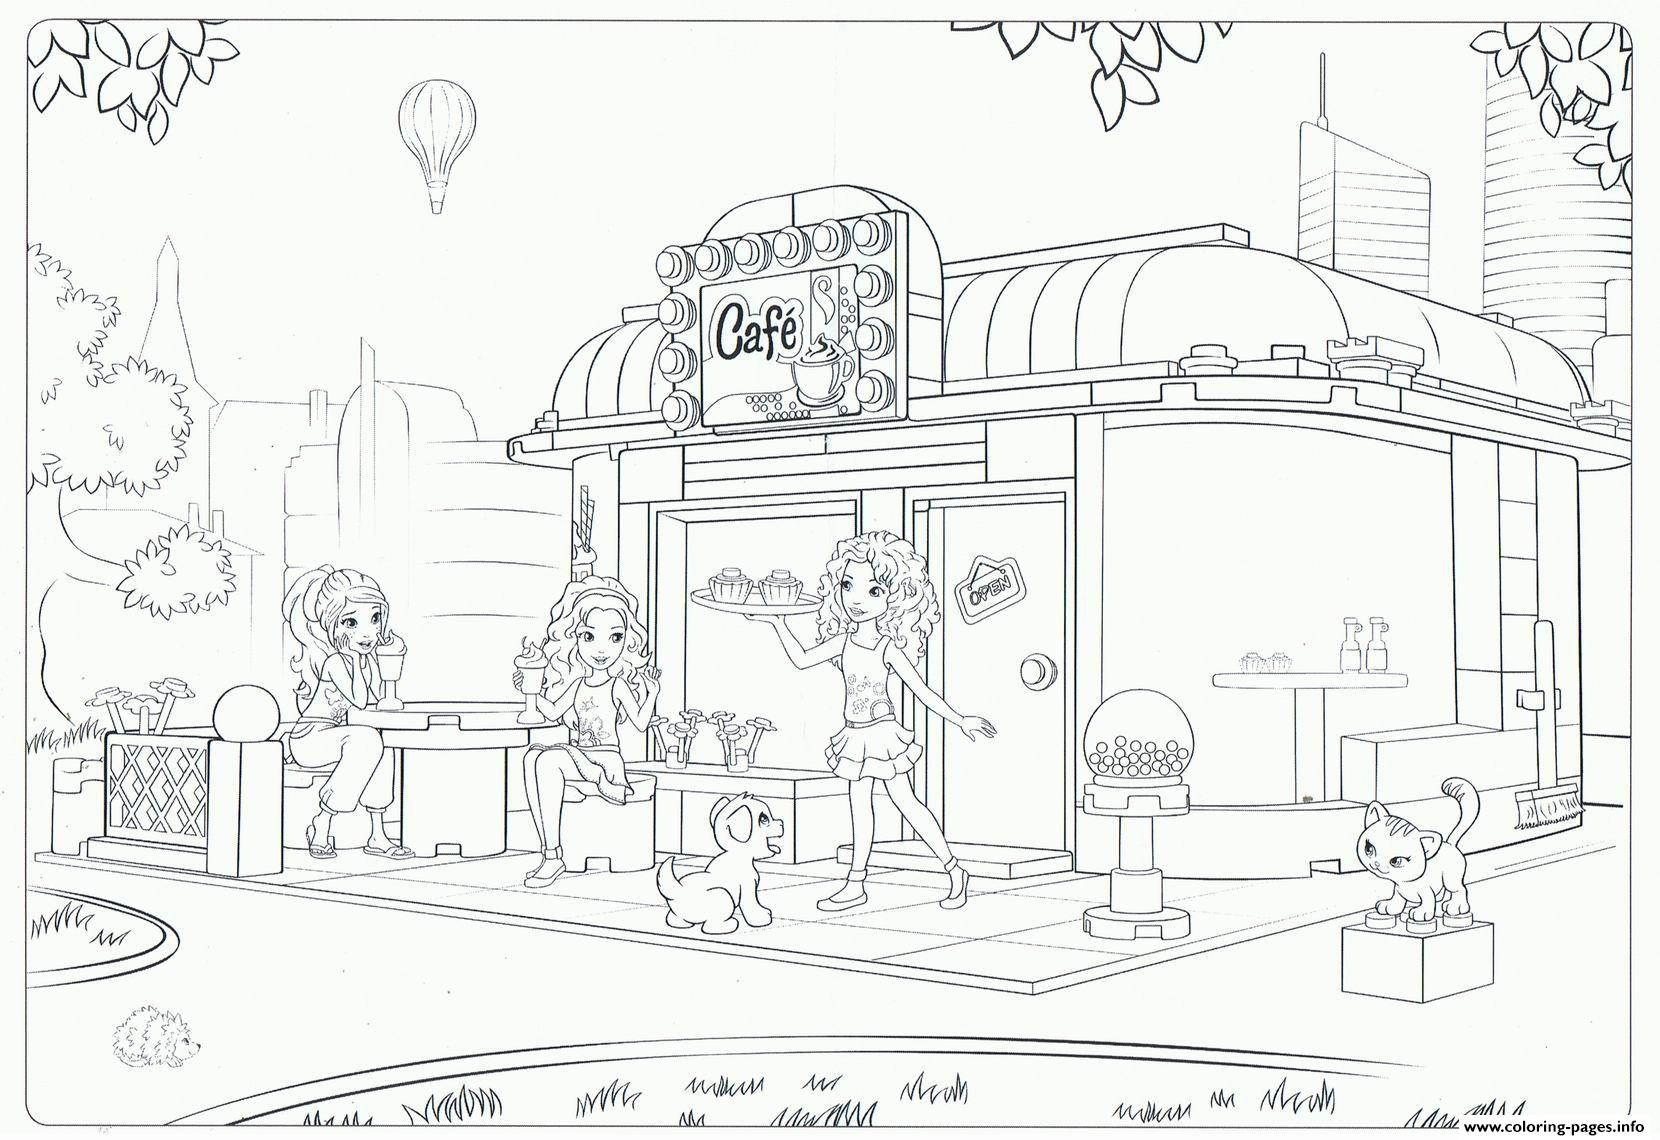 Lego friends cafe coloring pages printable for Coloring pages of lego friends